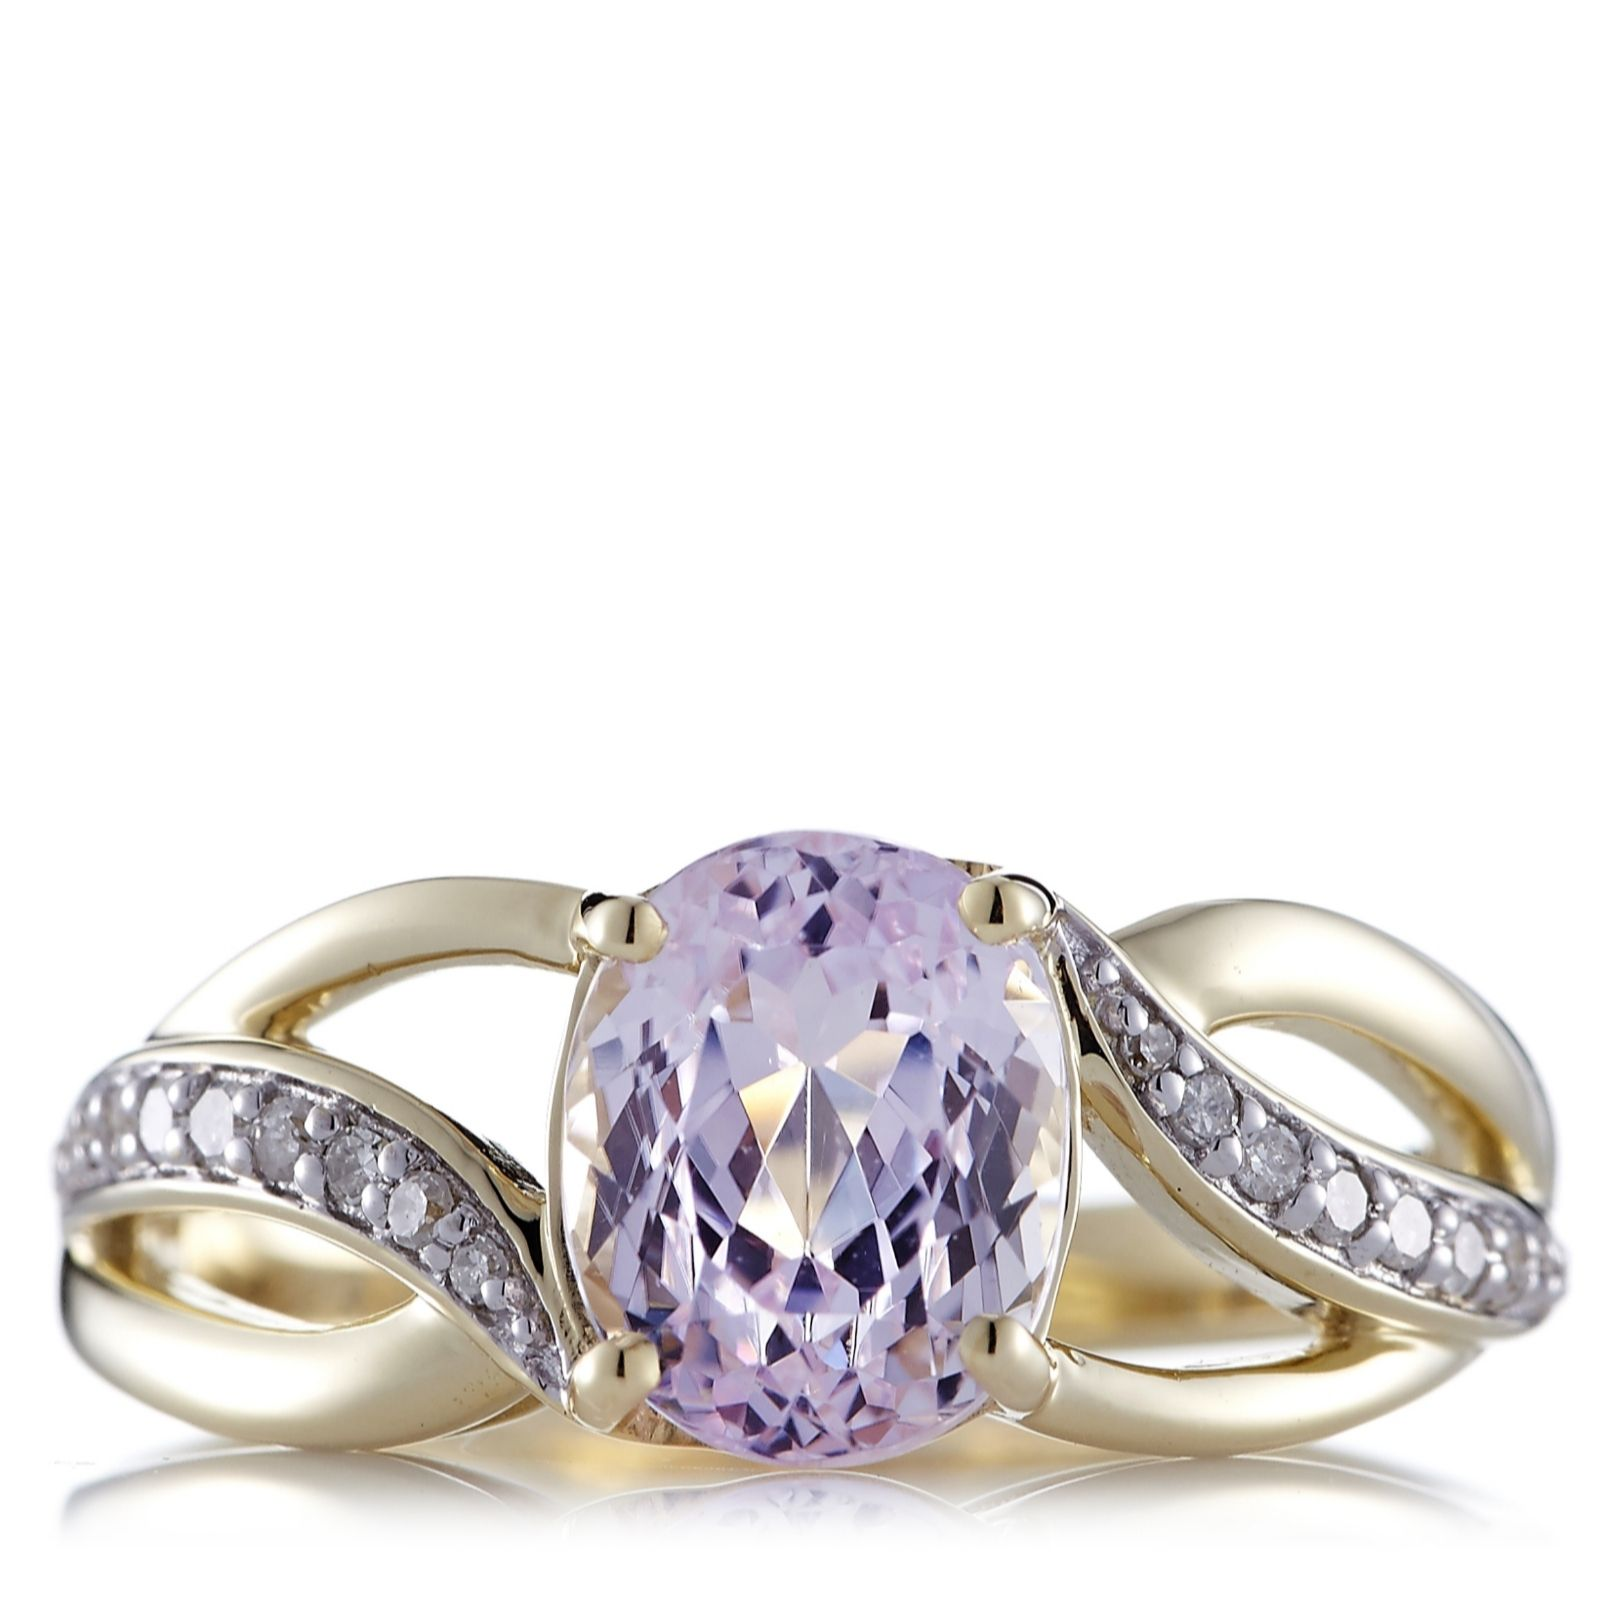 2.2ct Kunzite & Diamond Ring 9ct Gold